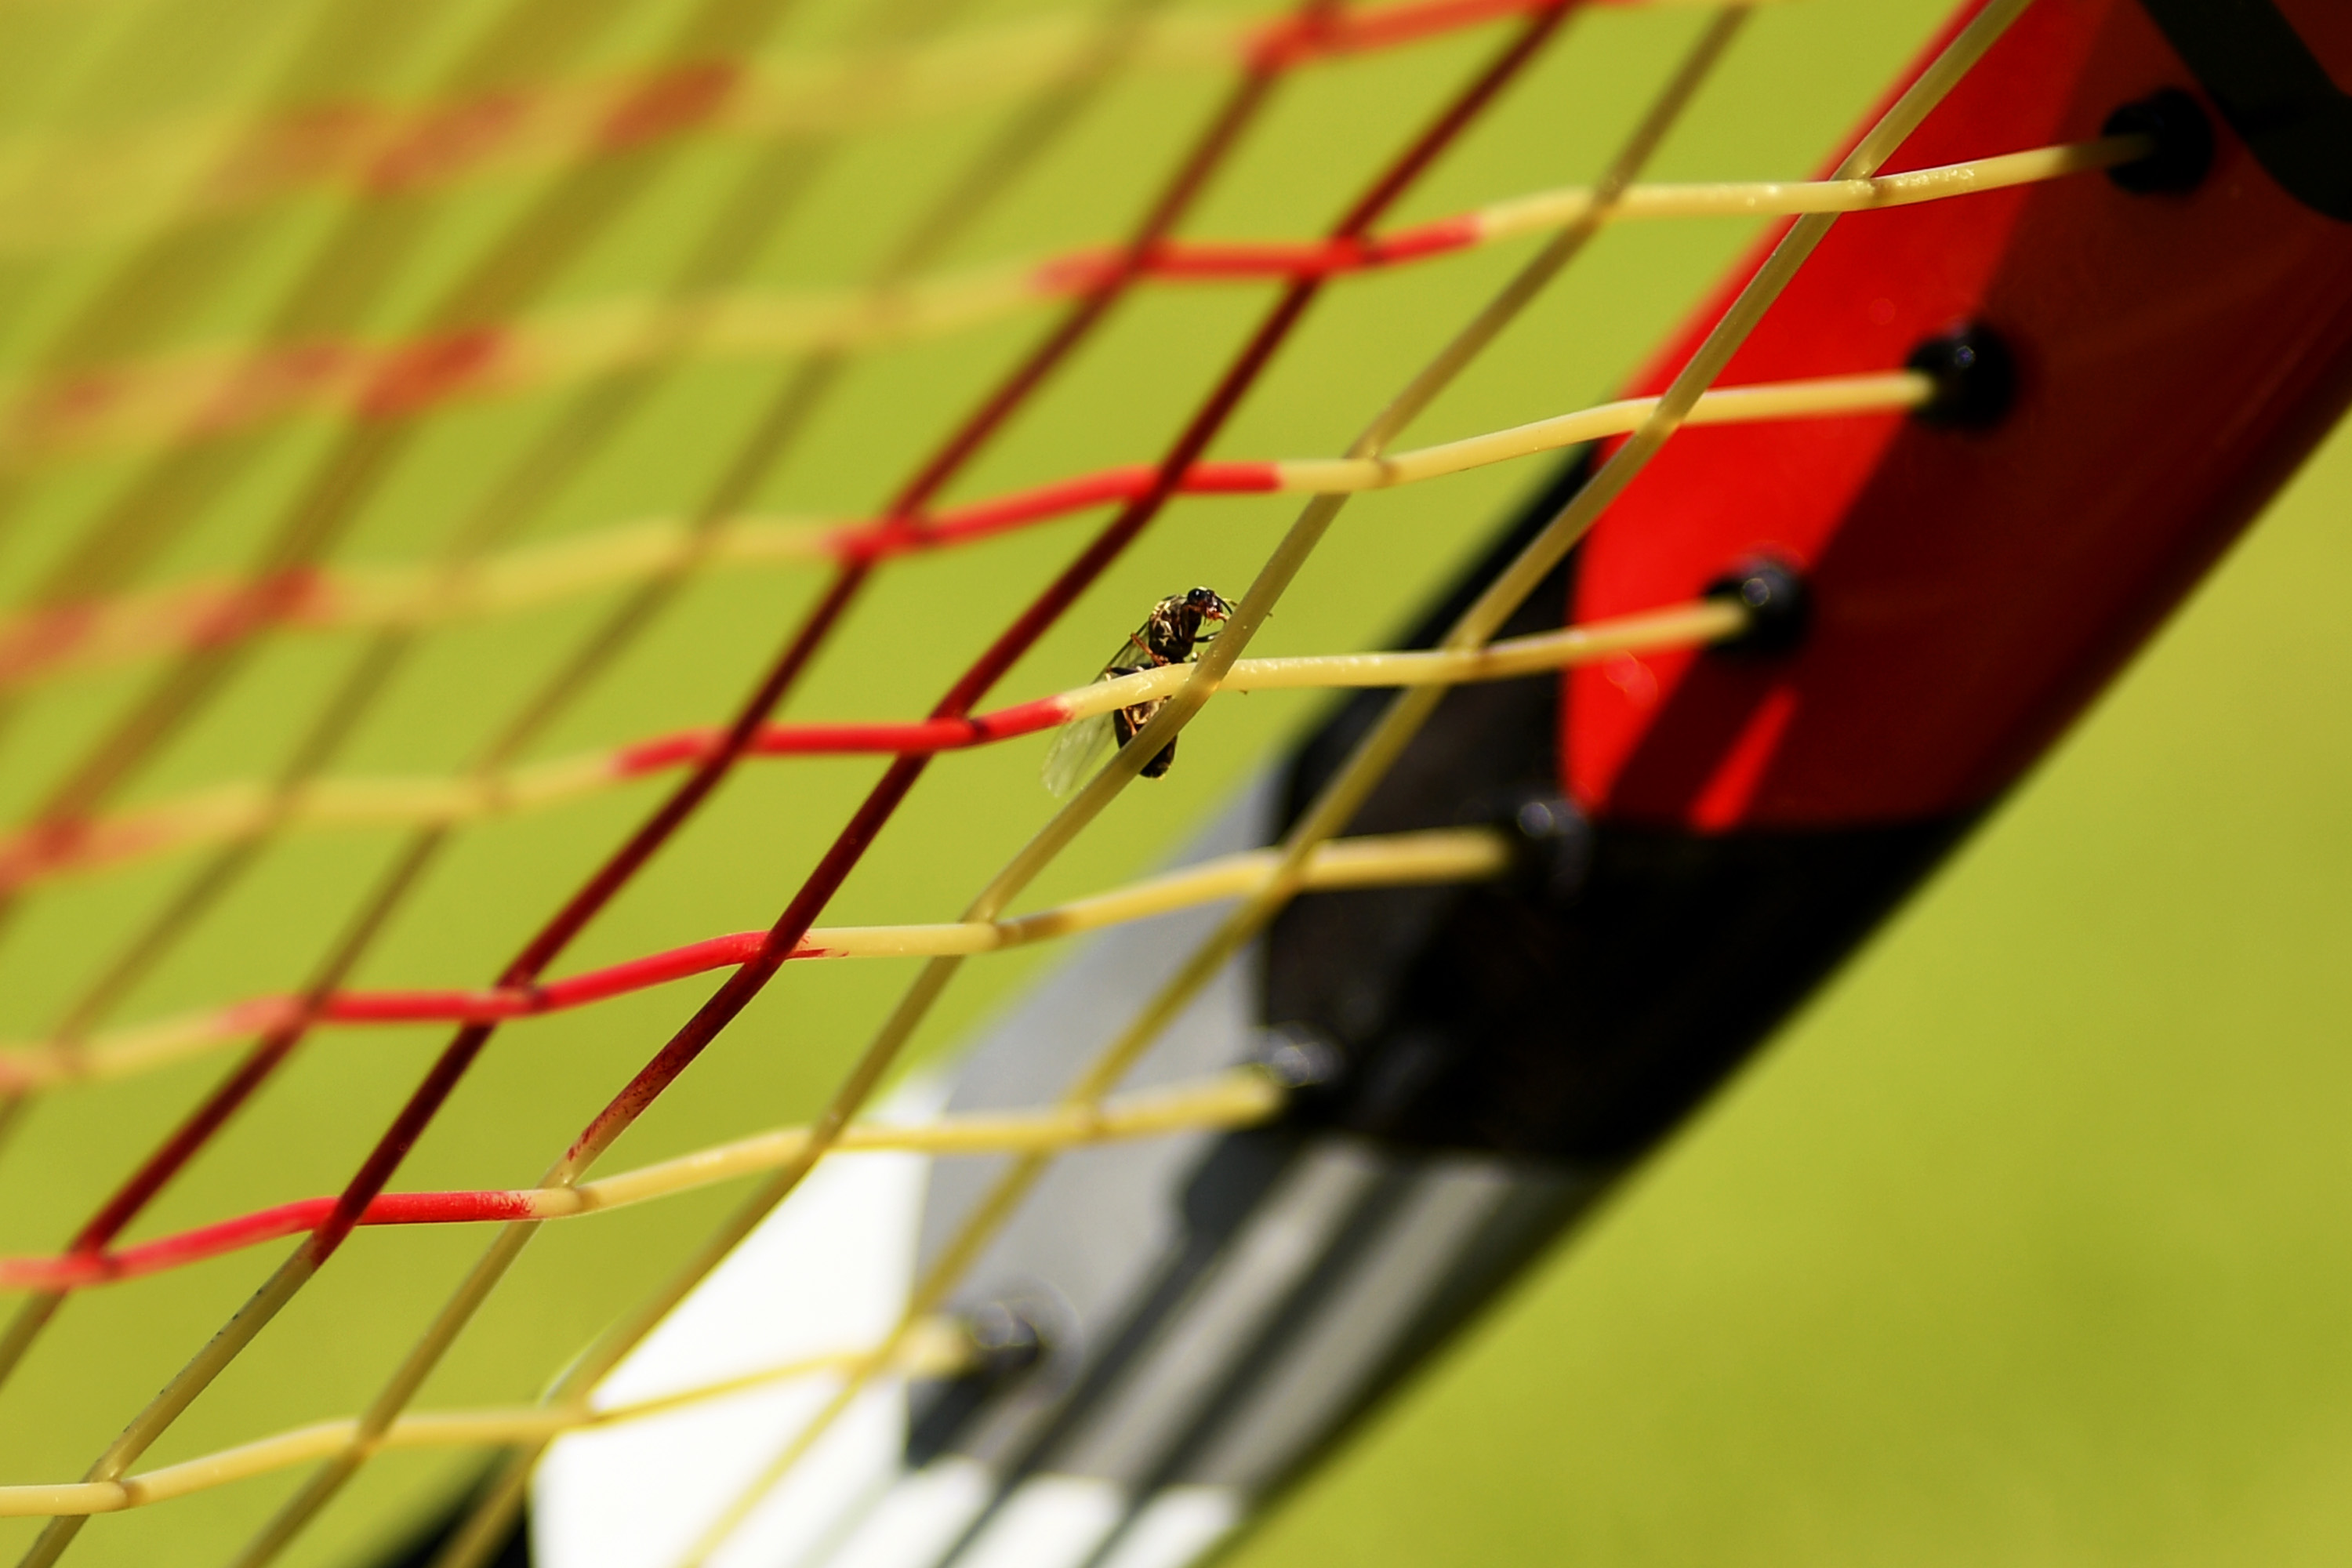 Flying ants bug tennis players at Wimbledon